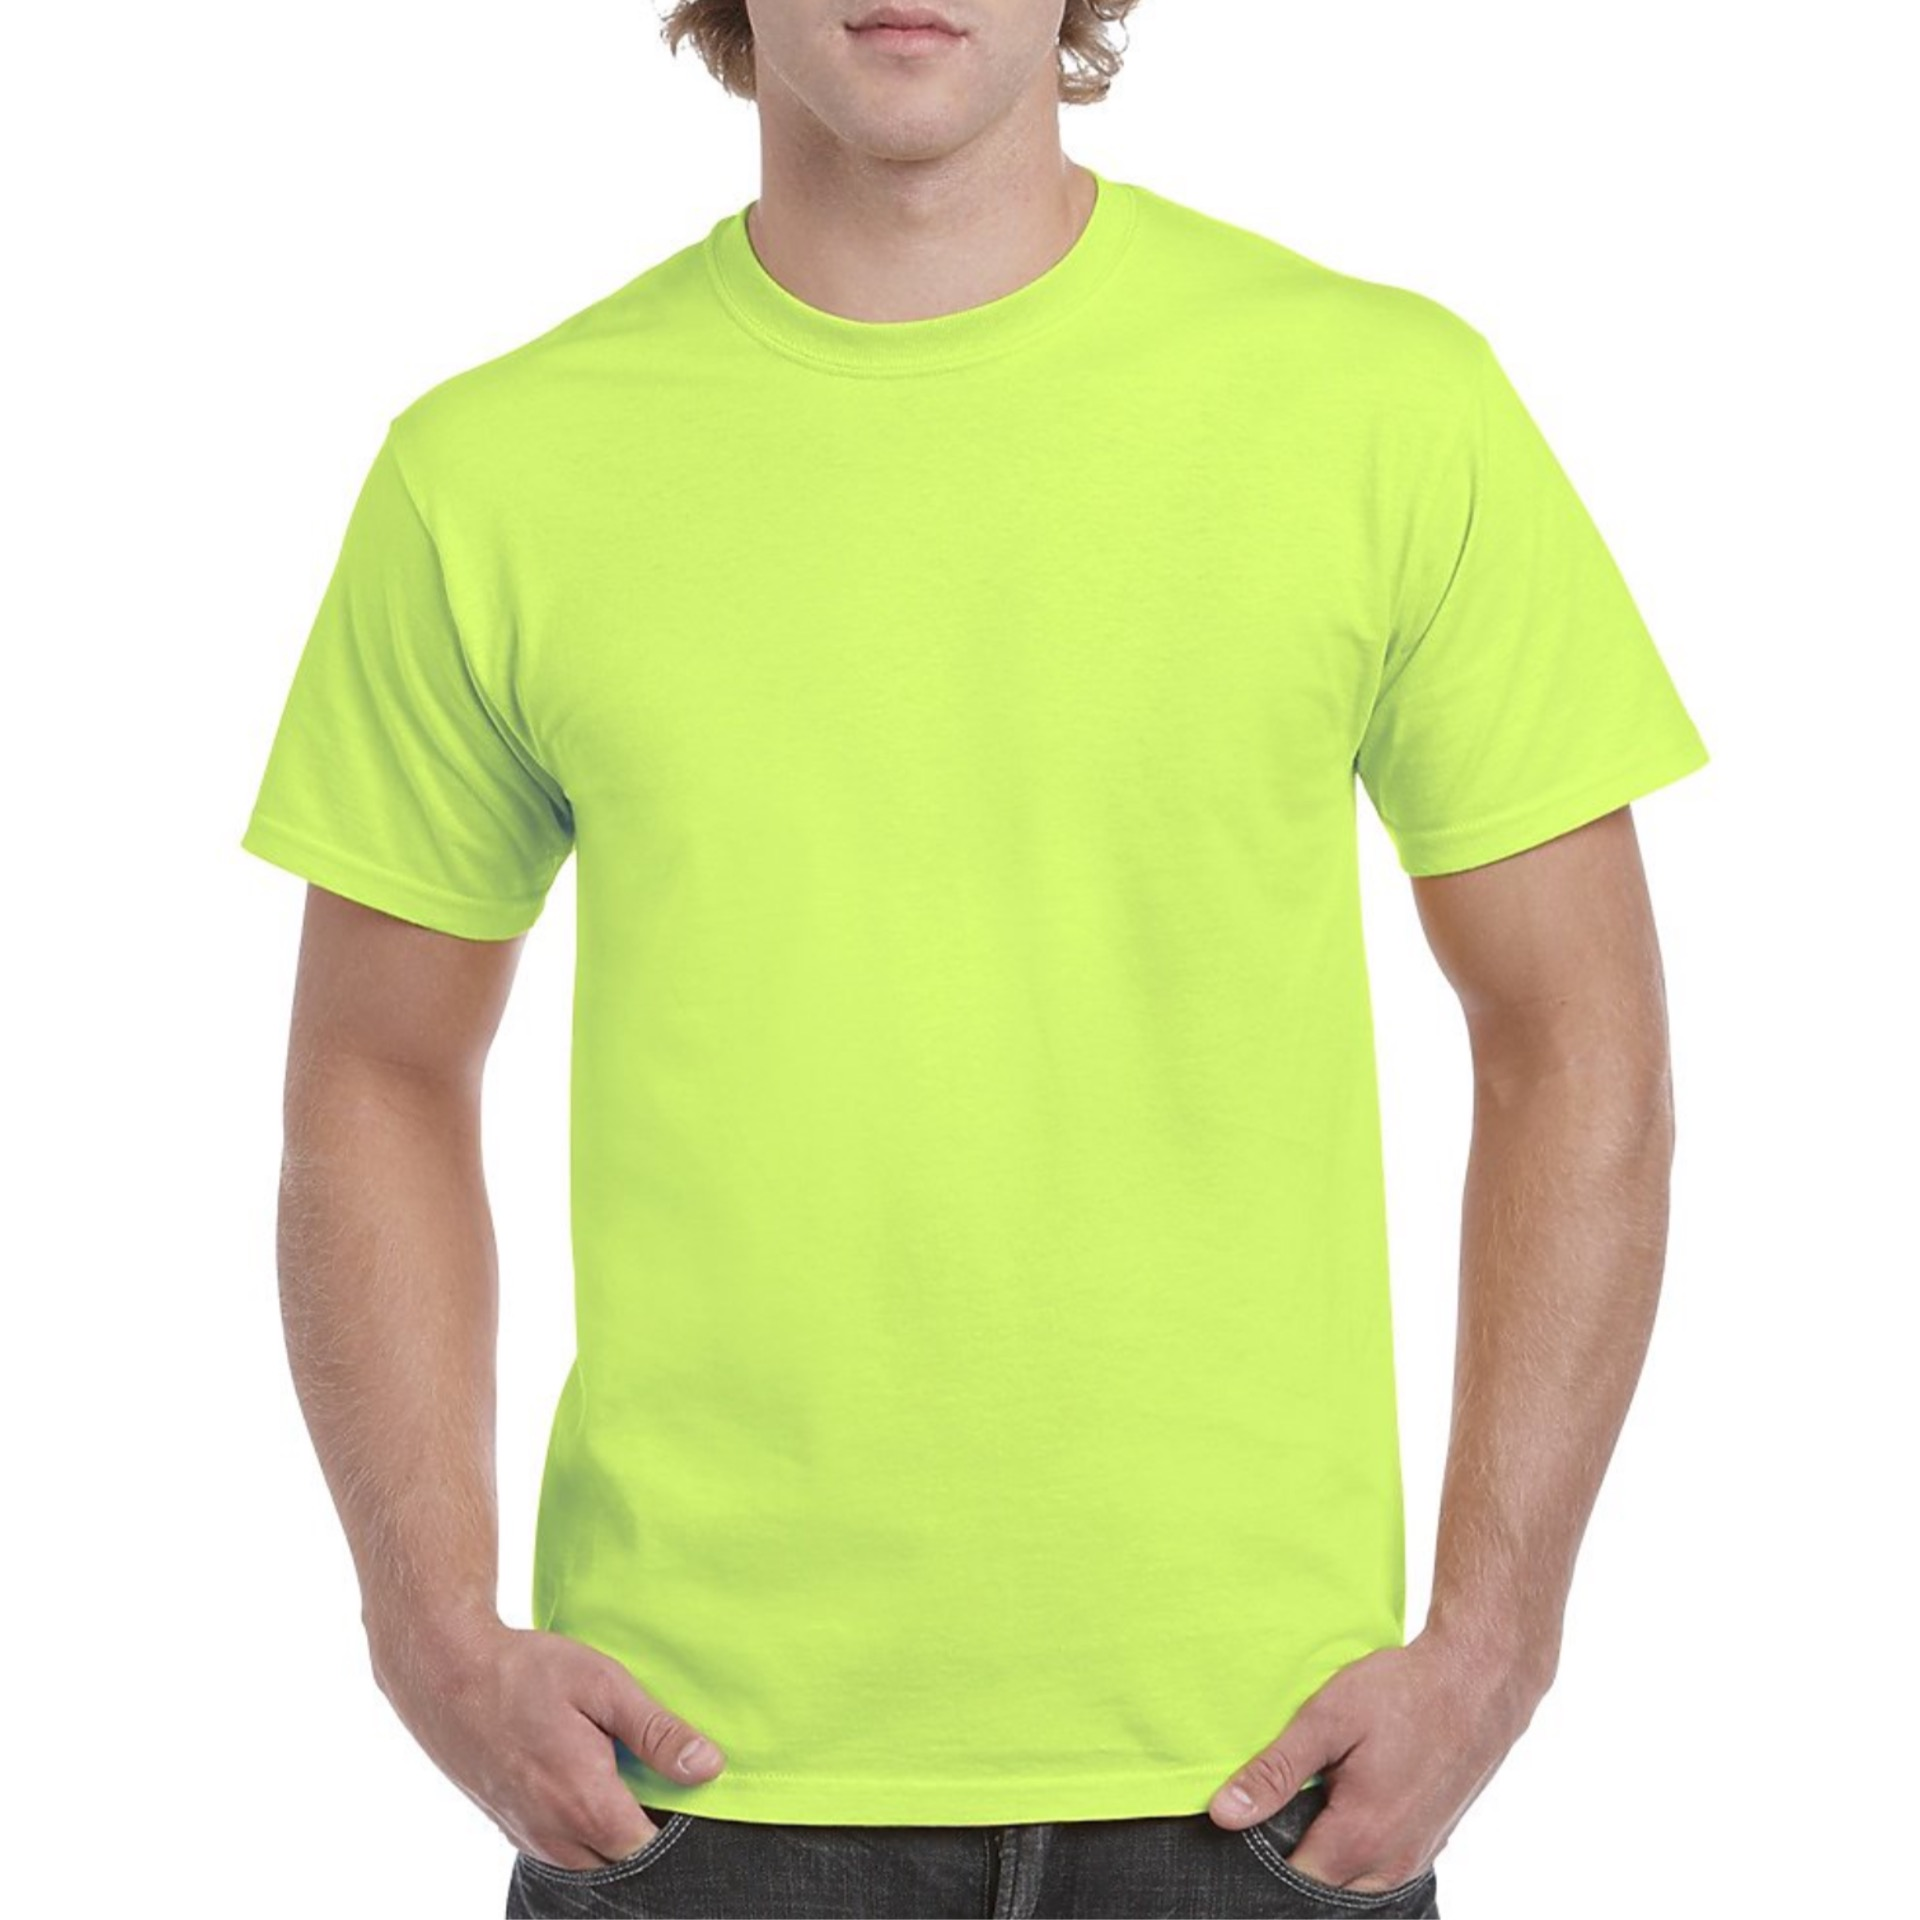 One-Color T-Shirts